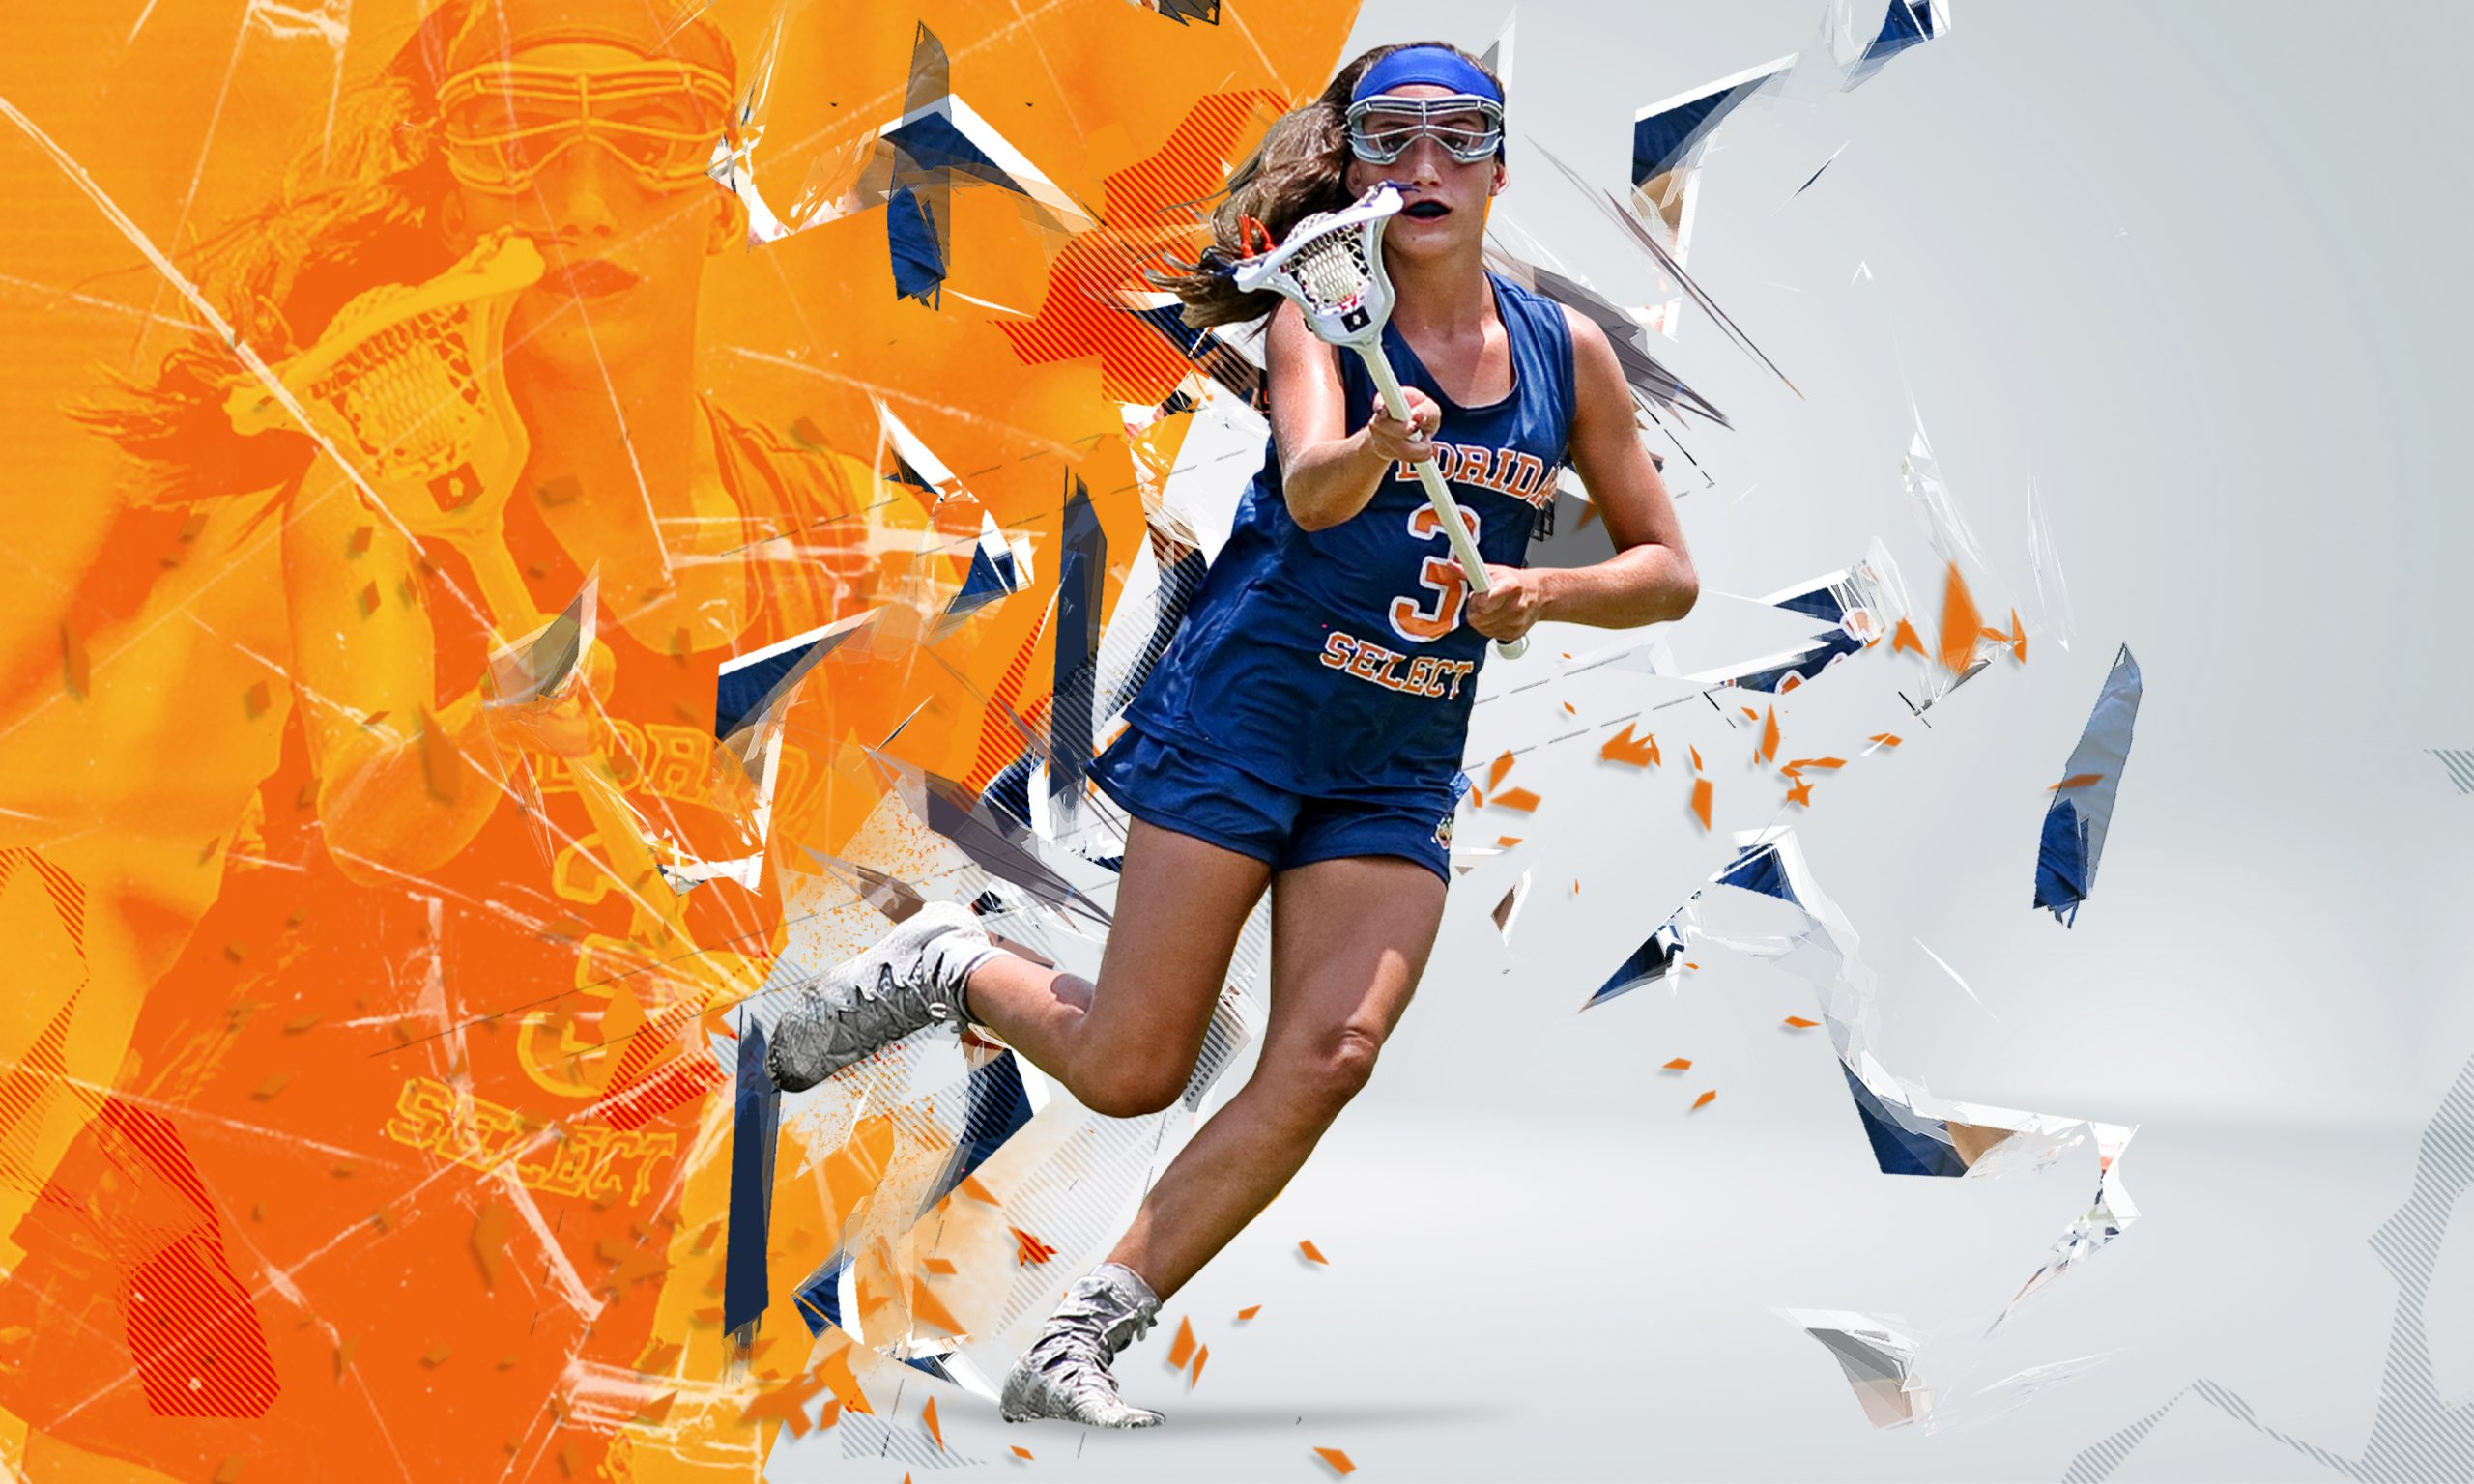 Lax Player female scaled